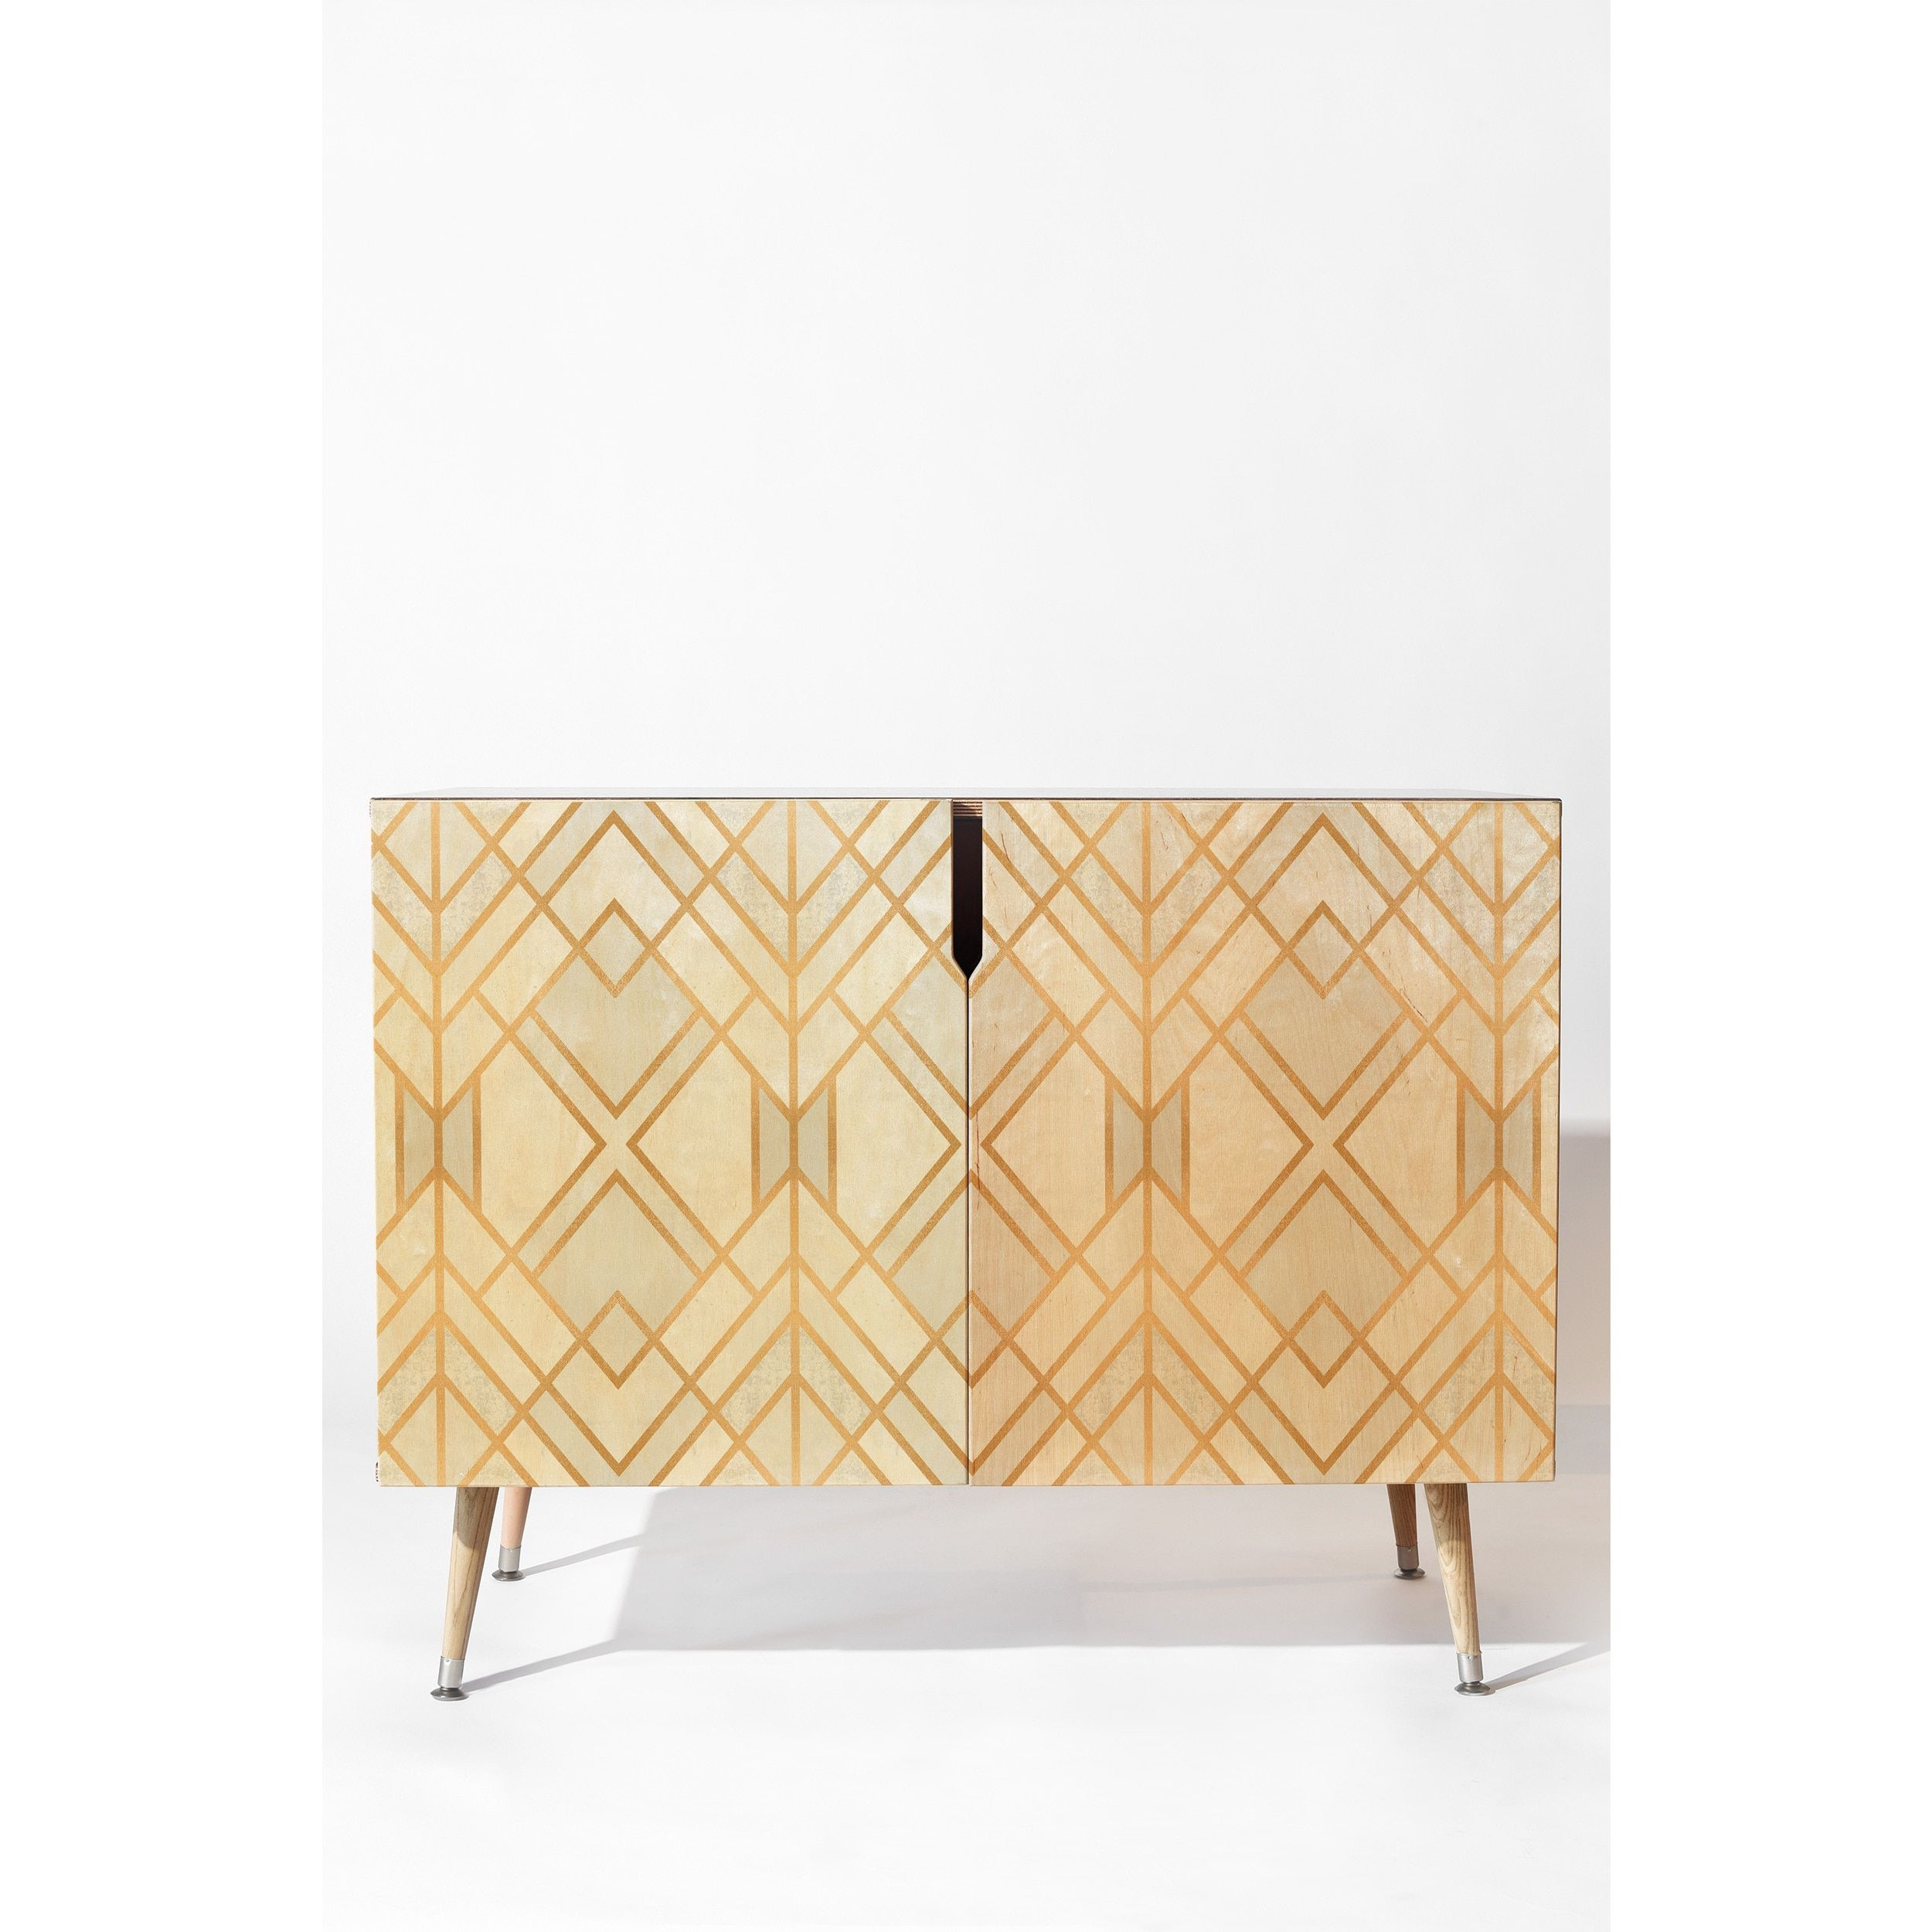 Deny Designs White Geometric Wood Credenza In 2019 | Home With Regard To Modele 7 Geometric Credenzas (Gallery 23 of 30)